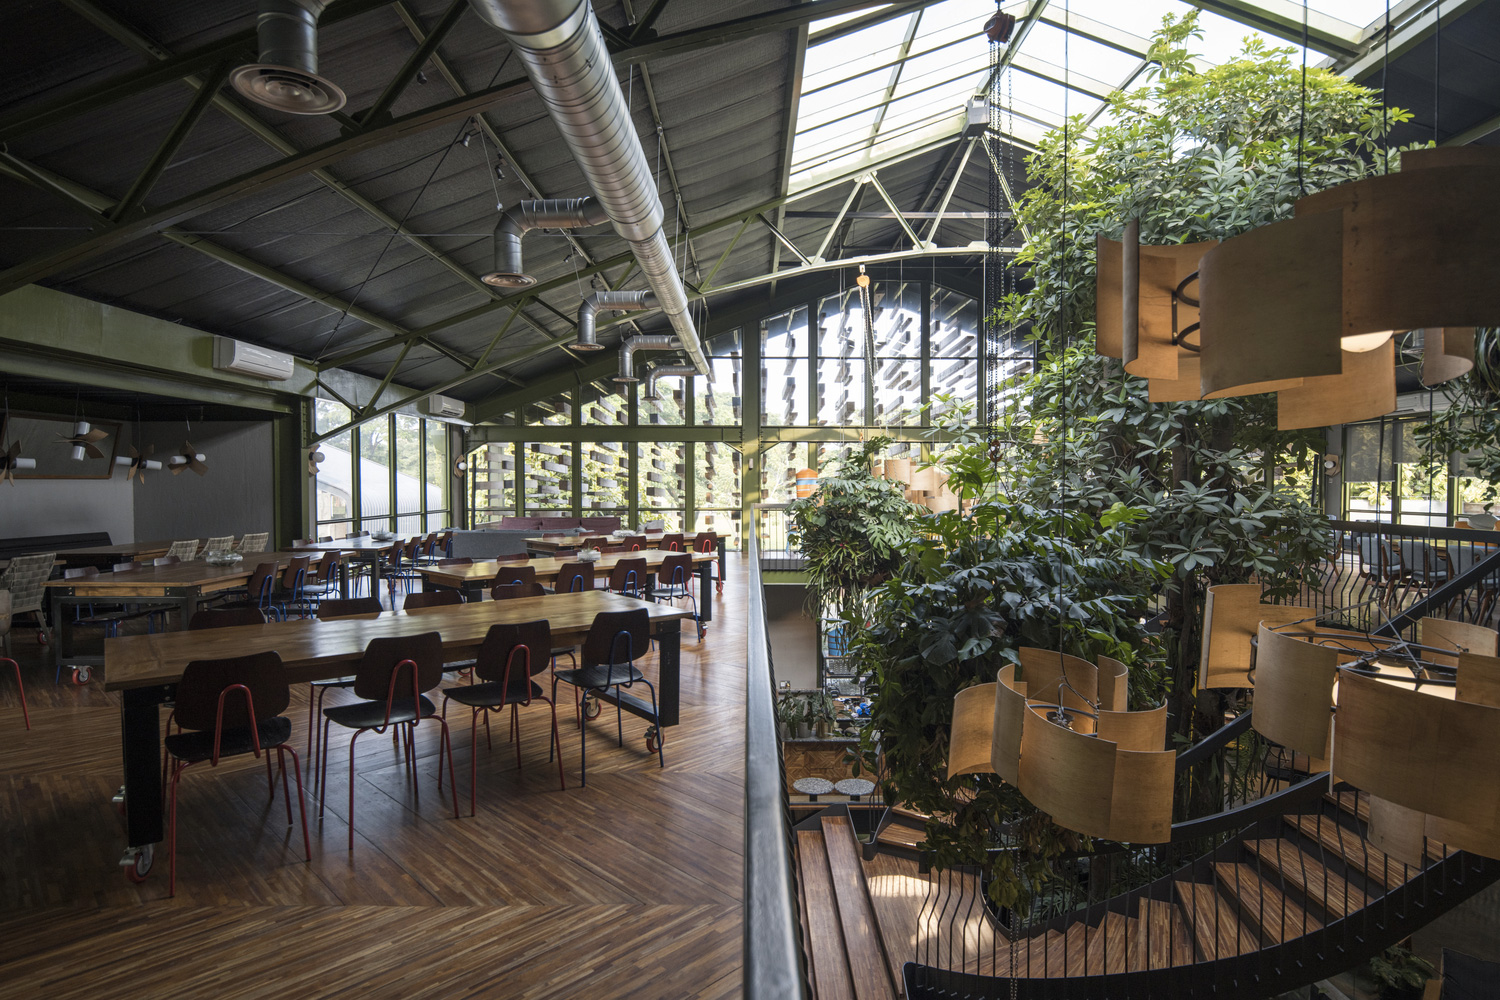 Tropical plants grow inside this jungle-themed restaurant just outside Jakarta